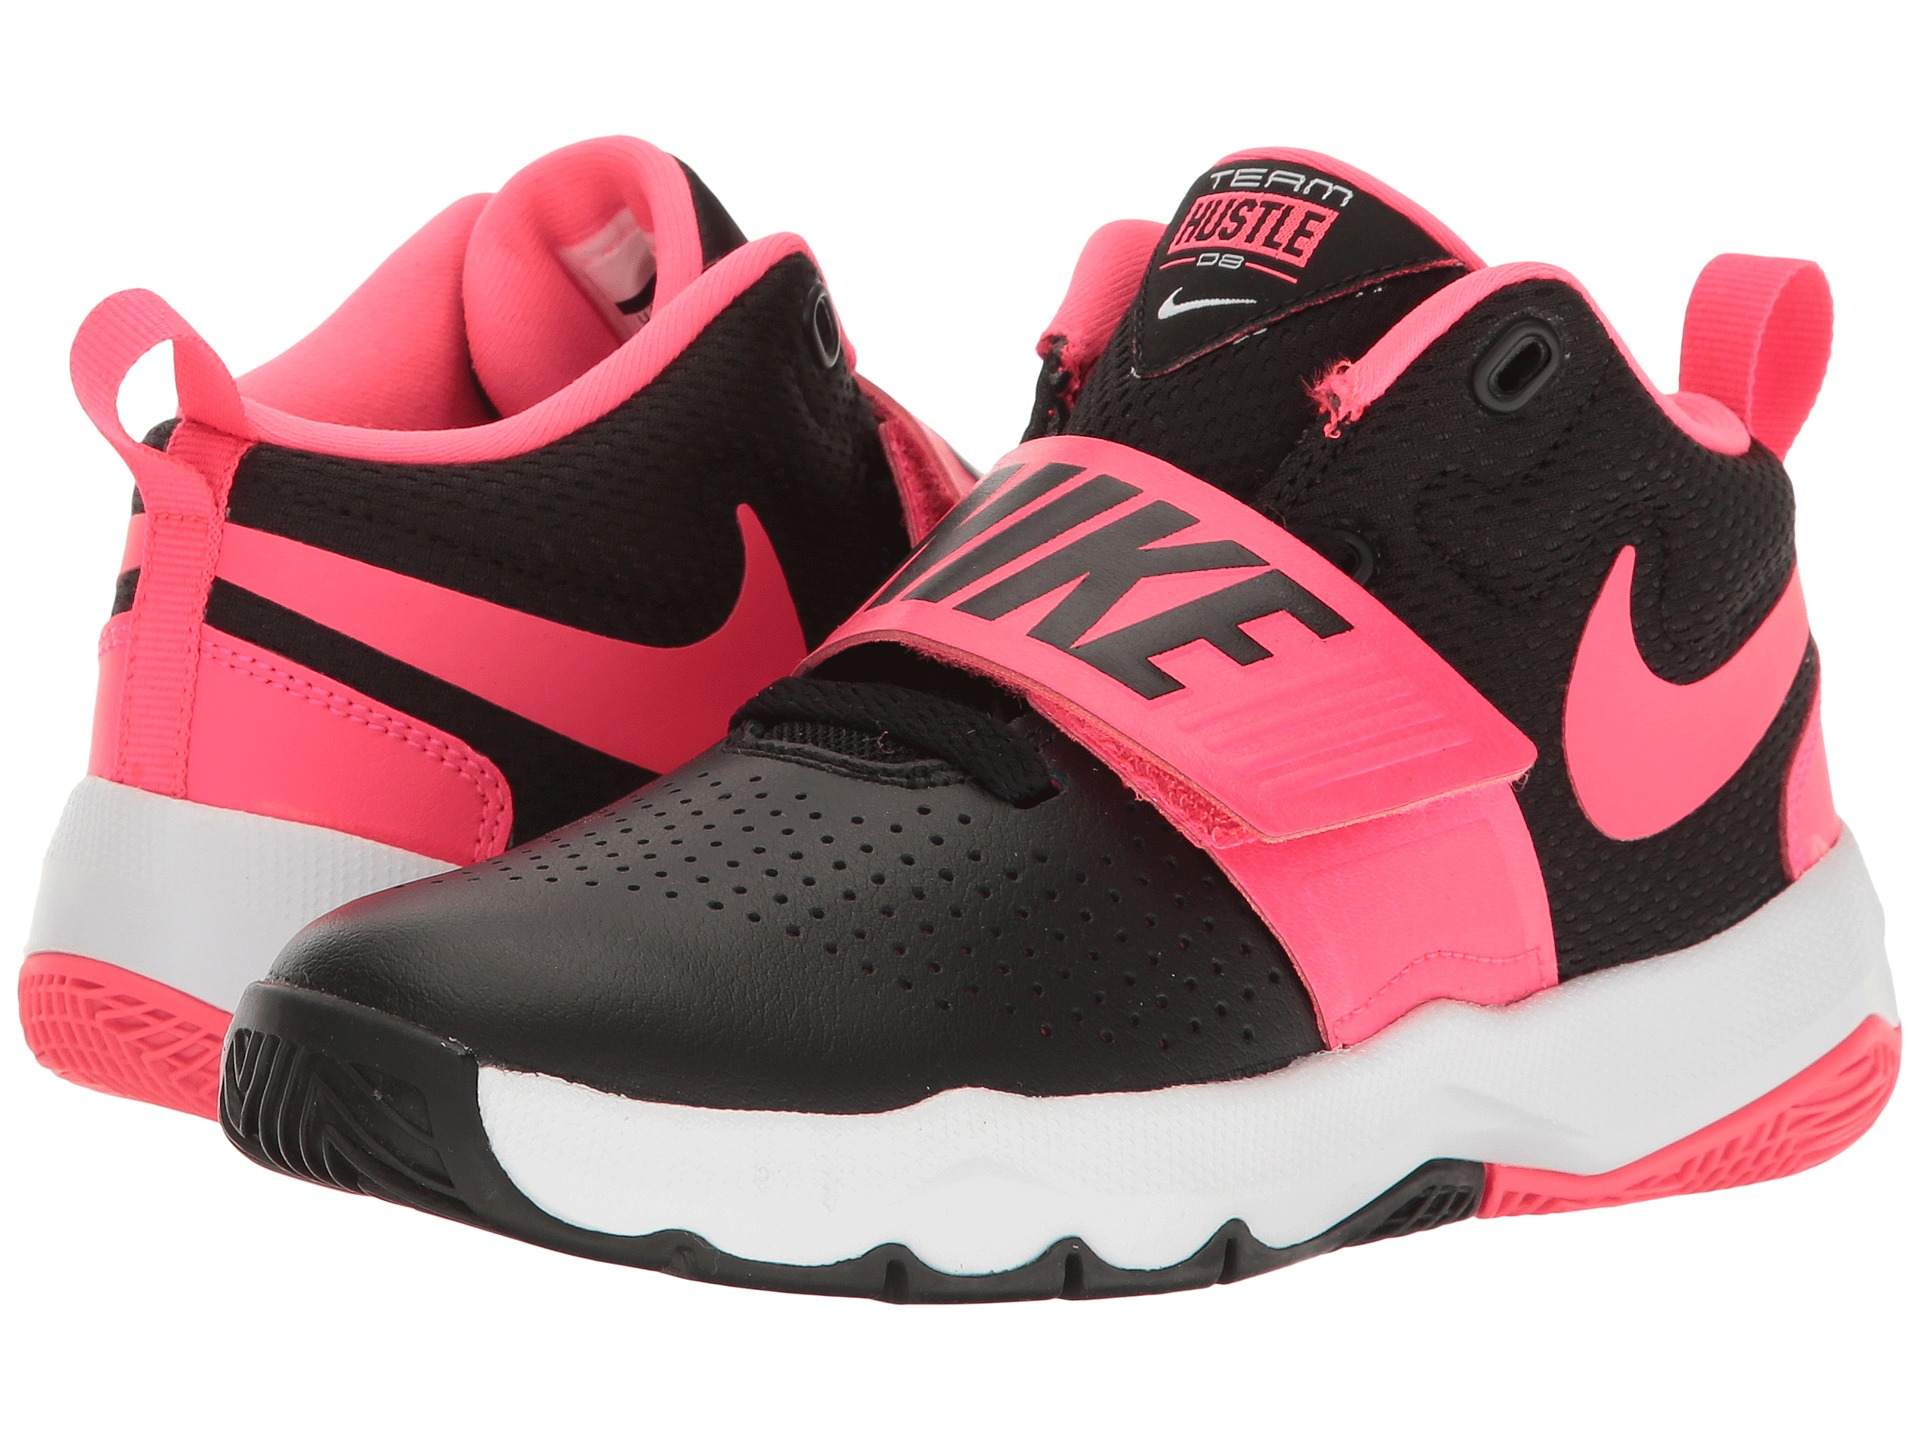 Best Toddler Tennis Shoes